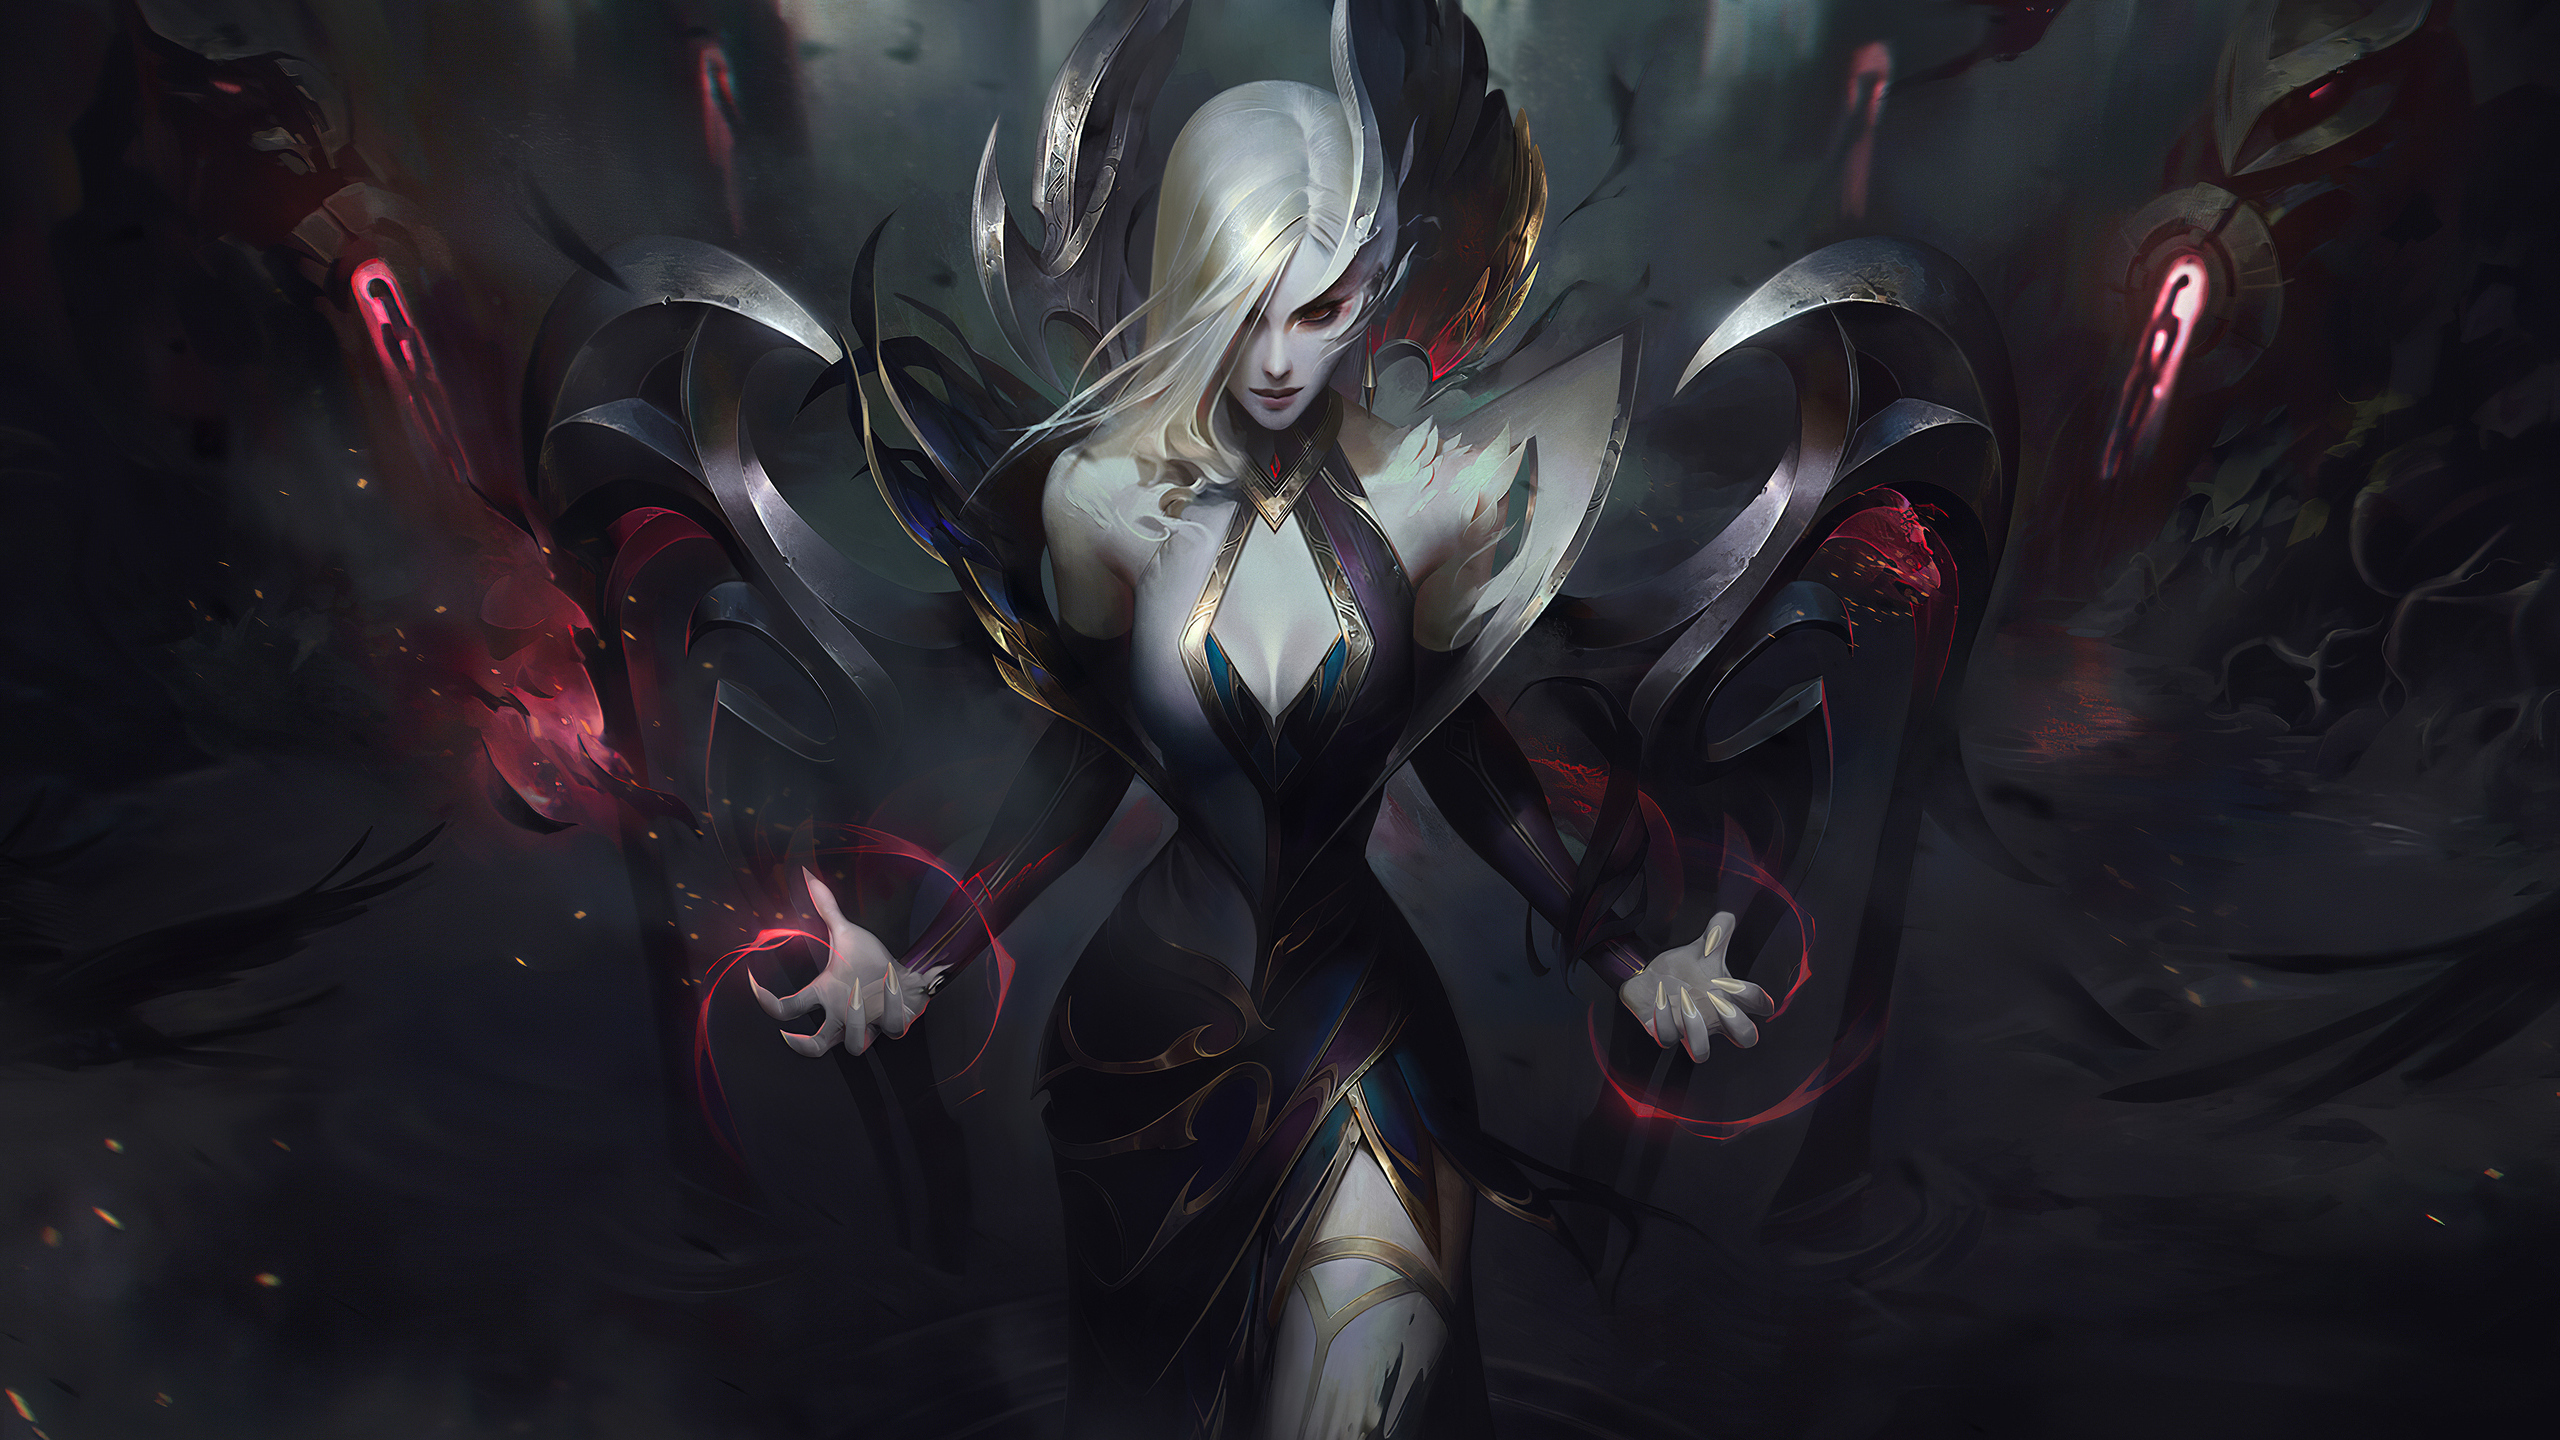 2560x1440 Coven Morgana League Of Legends 4k 1440p Resolution Hd 4k Wallpapers Images Backgrounds Photos And Pictures